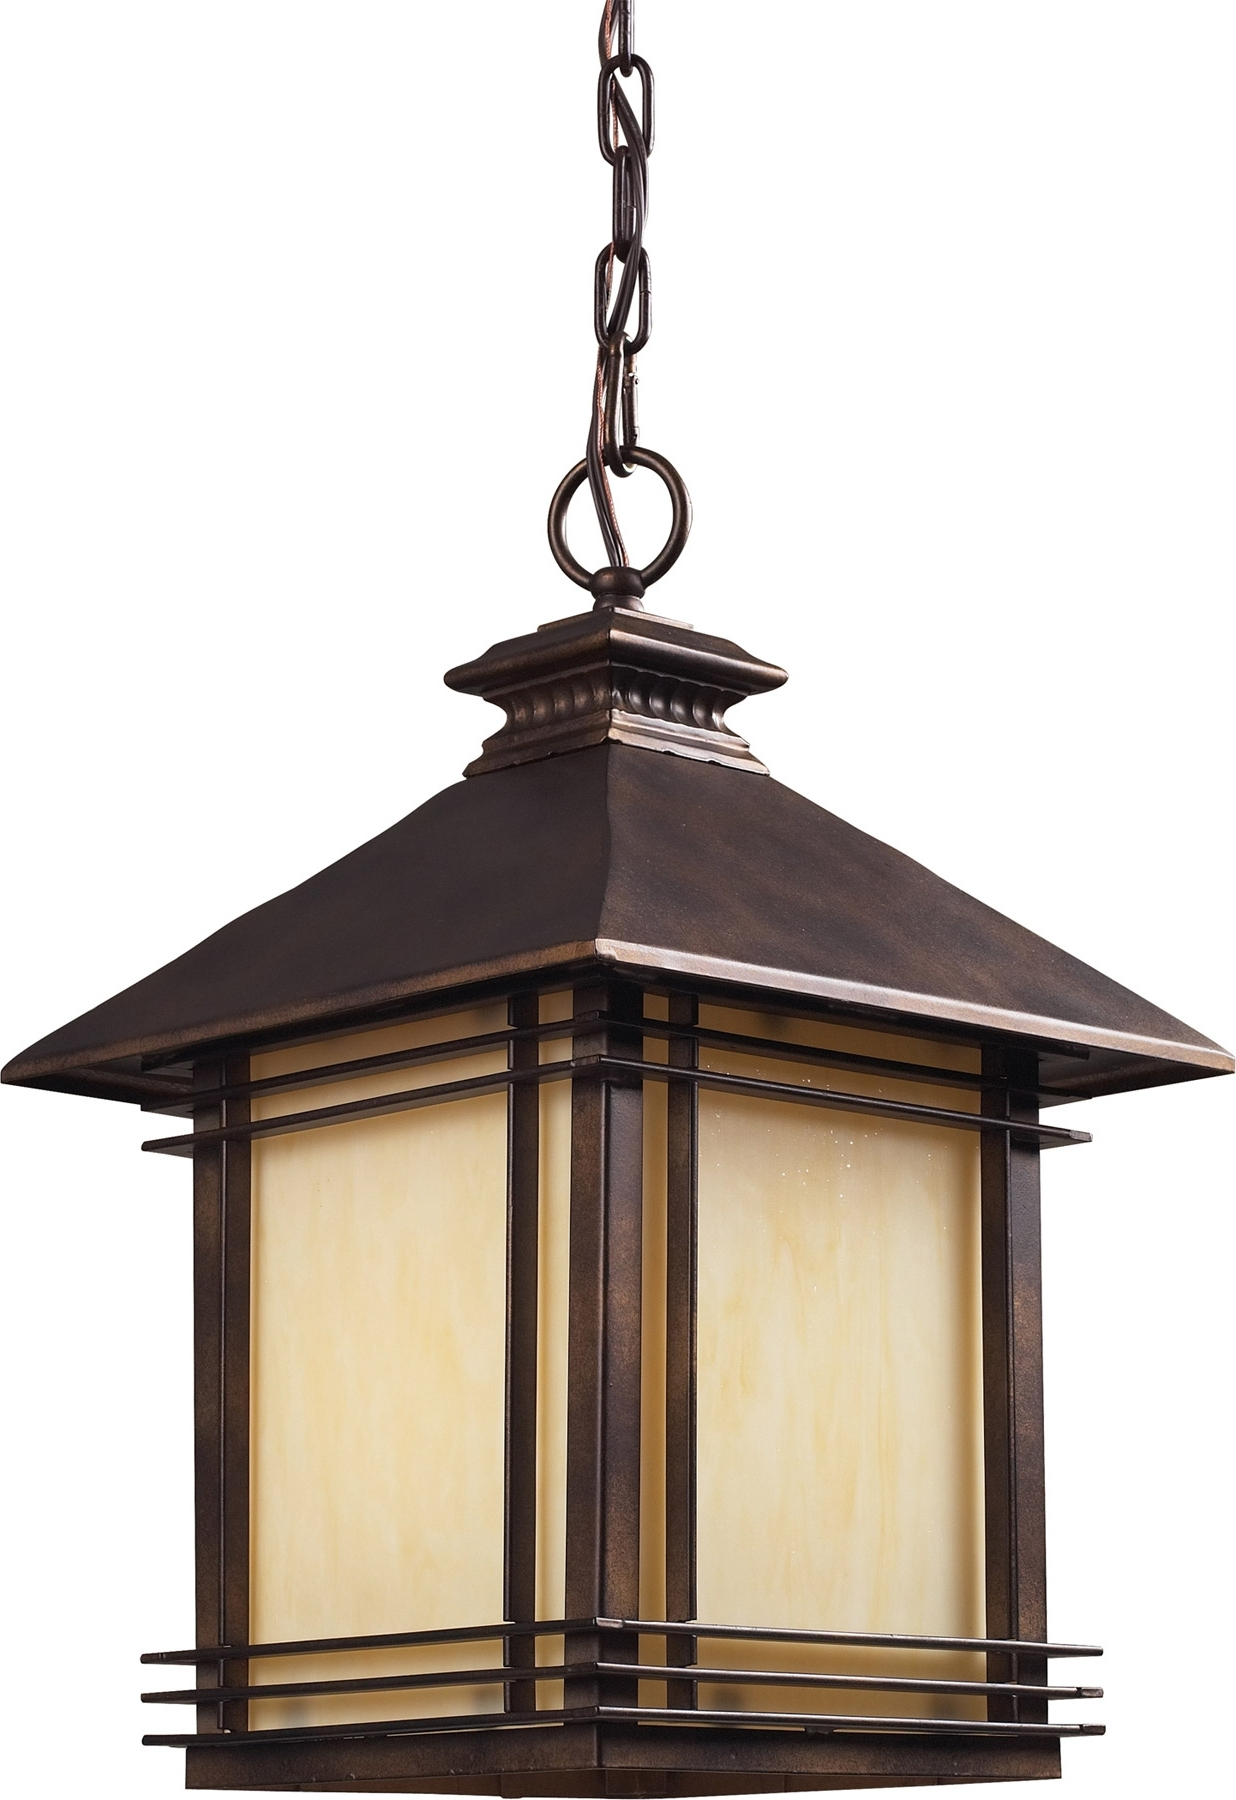 Lighting 42103/1 Blackwell Outdoor Hanging Lantern Intended For Most Current Solar Powered Outdoor Hanging Lanterns (View 18 of 20)